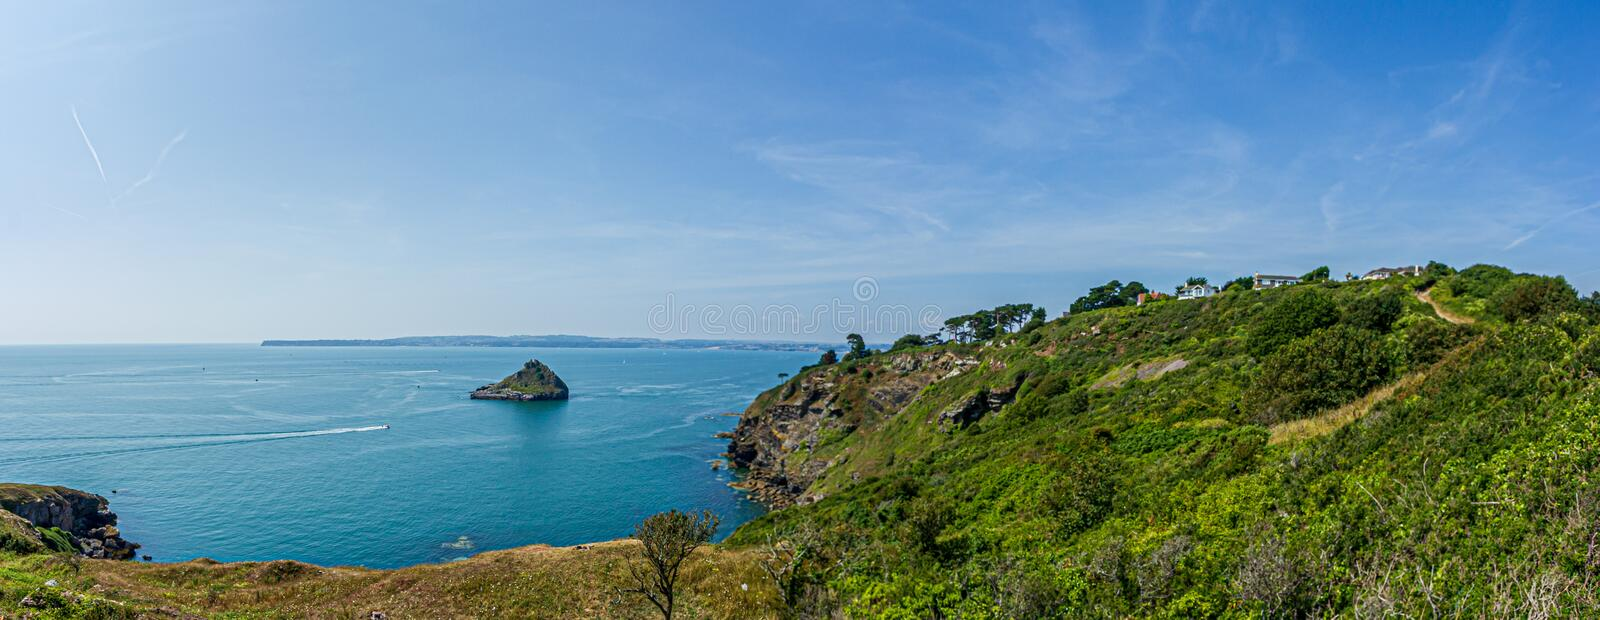 A panorama view of a rocky island surrounded by beautiful flat blue sea water with rocky coastline under a majestic blue sky and s. Ome white clouds stock image